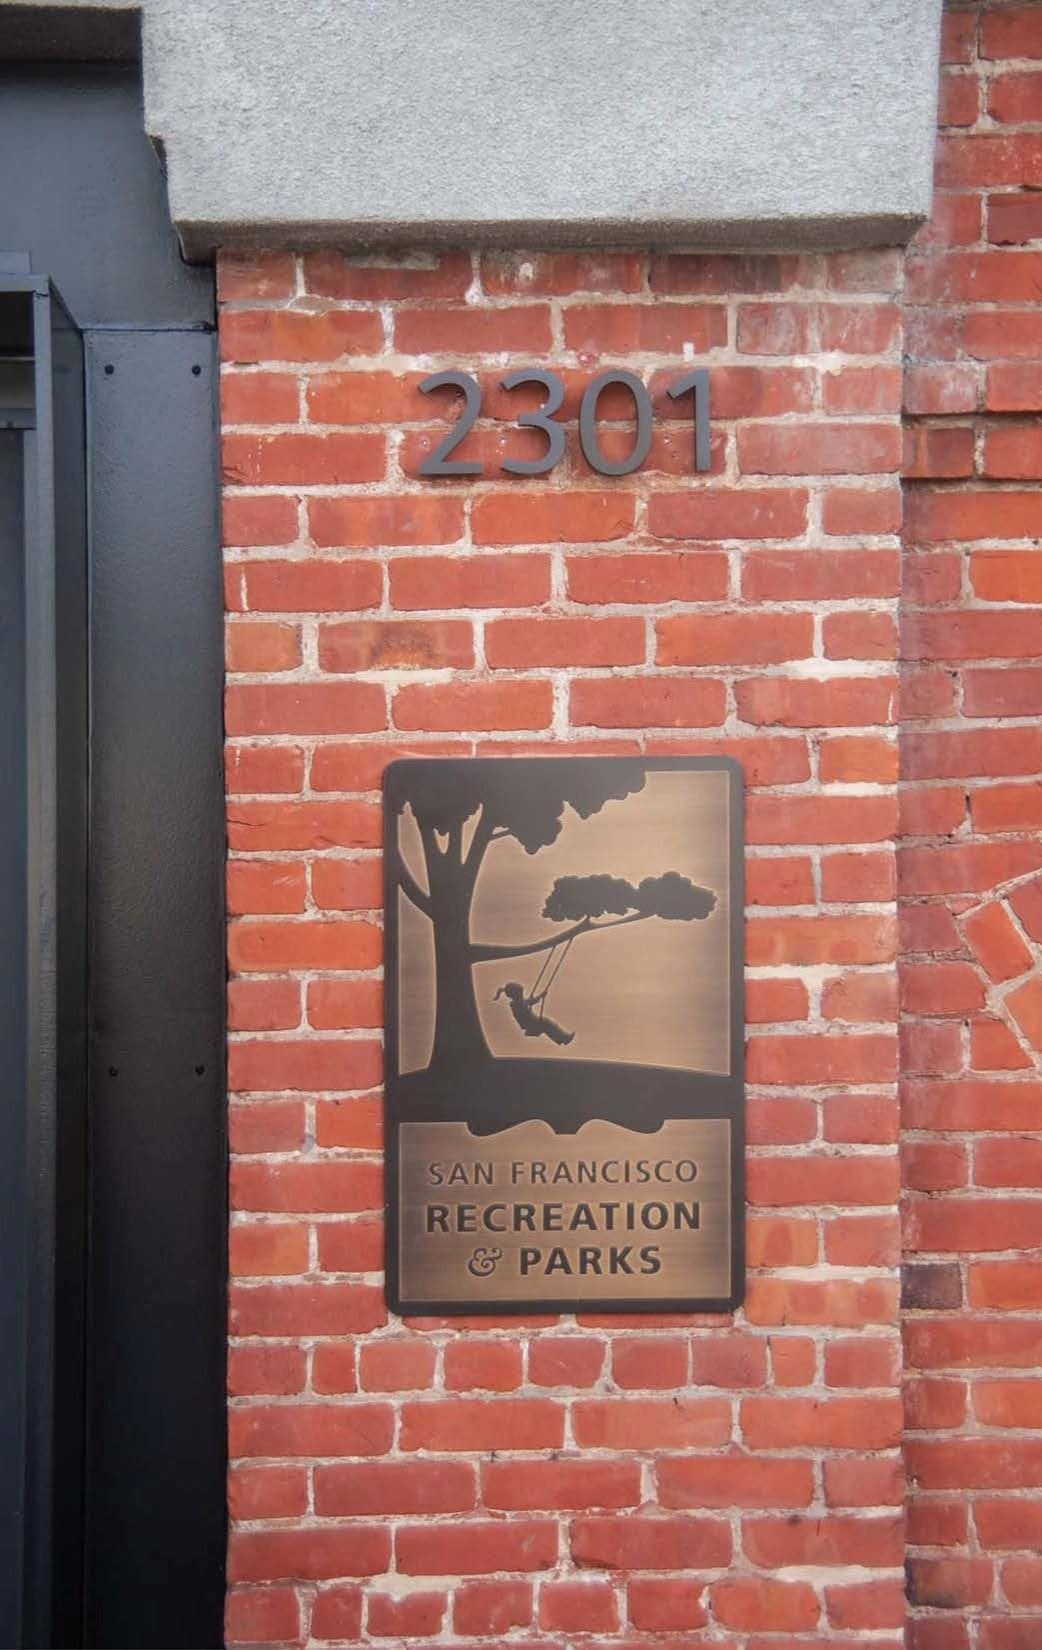 Image shows Geneva Car Barn Address number 2301 and bronze Rec and Park logo